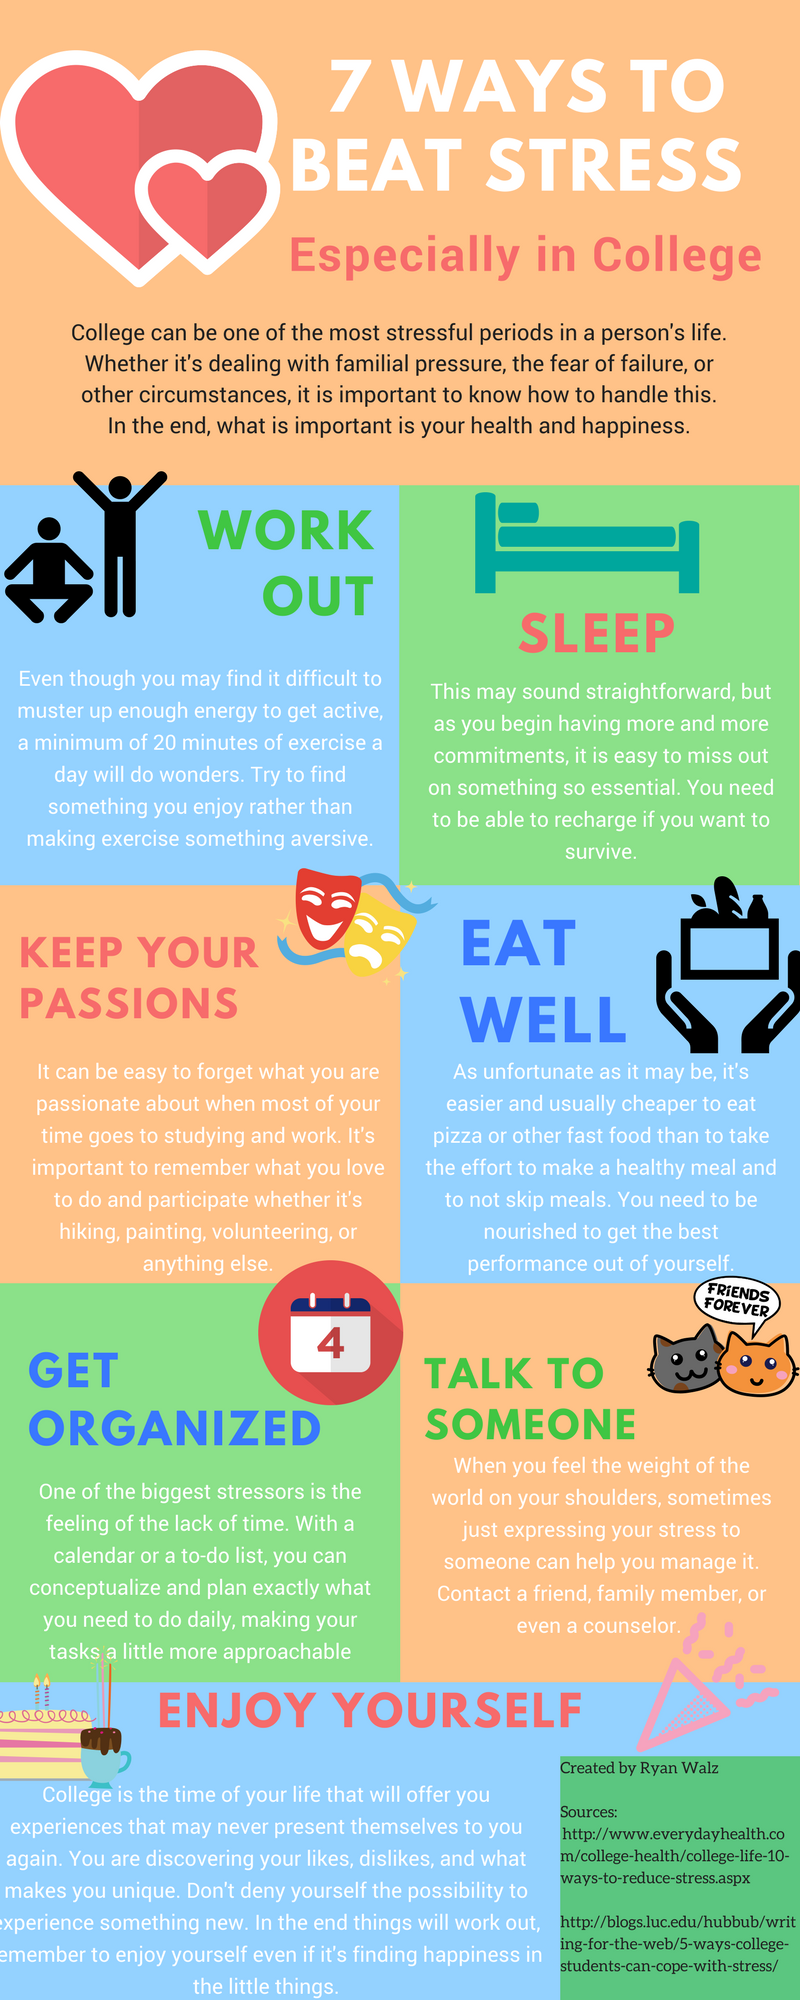 Stress Tips for College Students #Infographic - Ryan - Medium